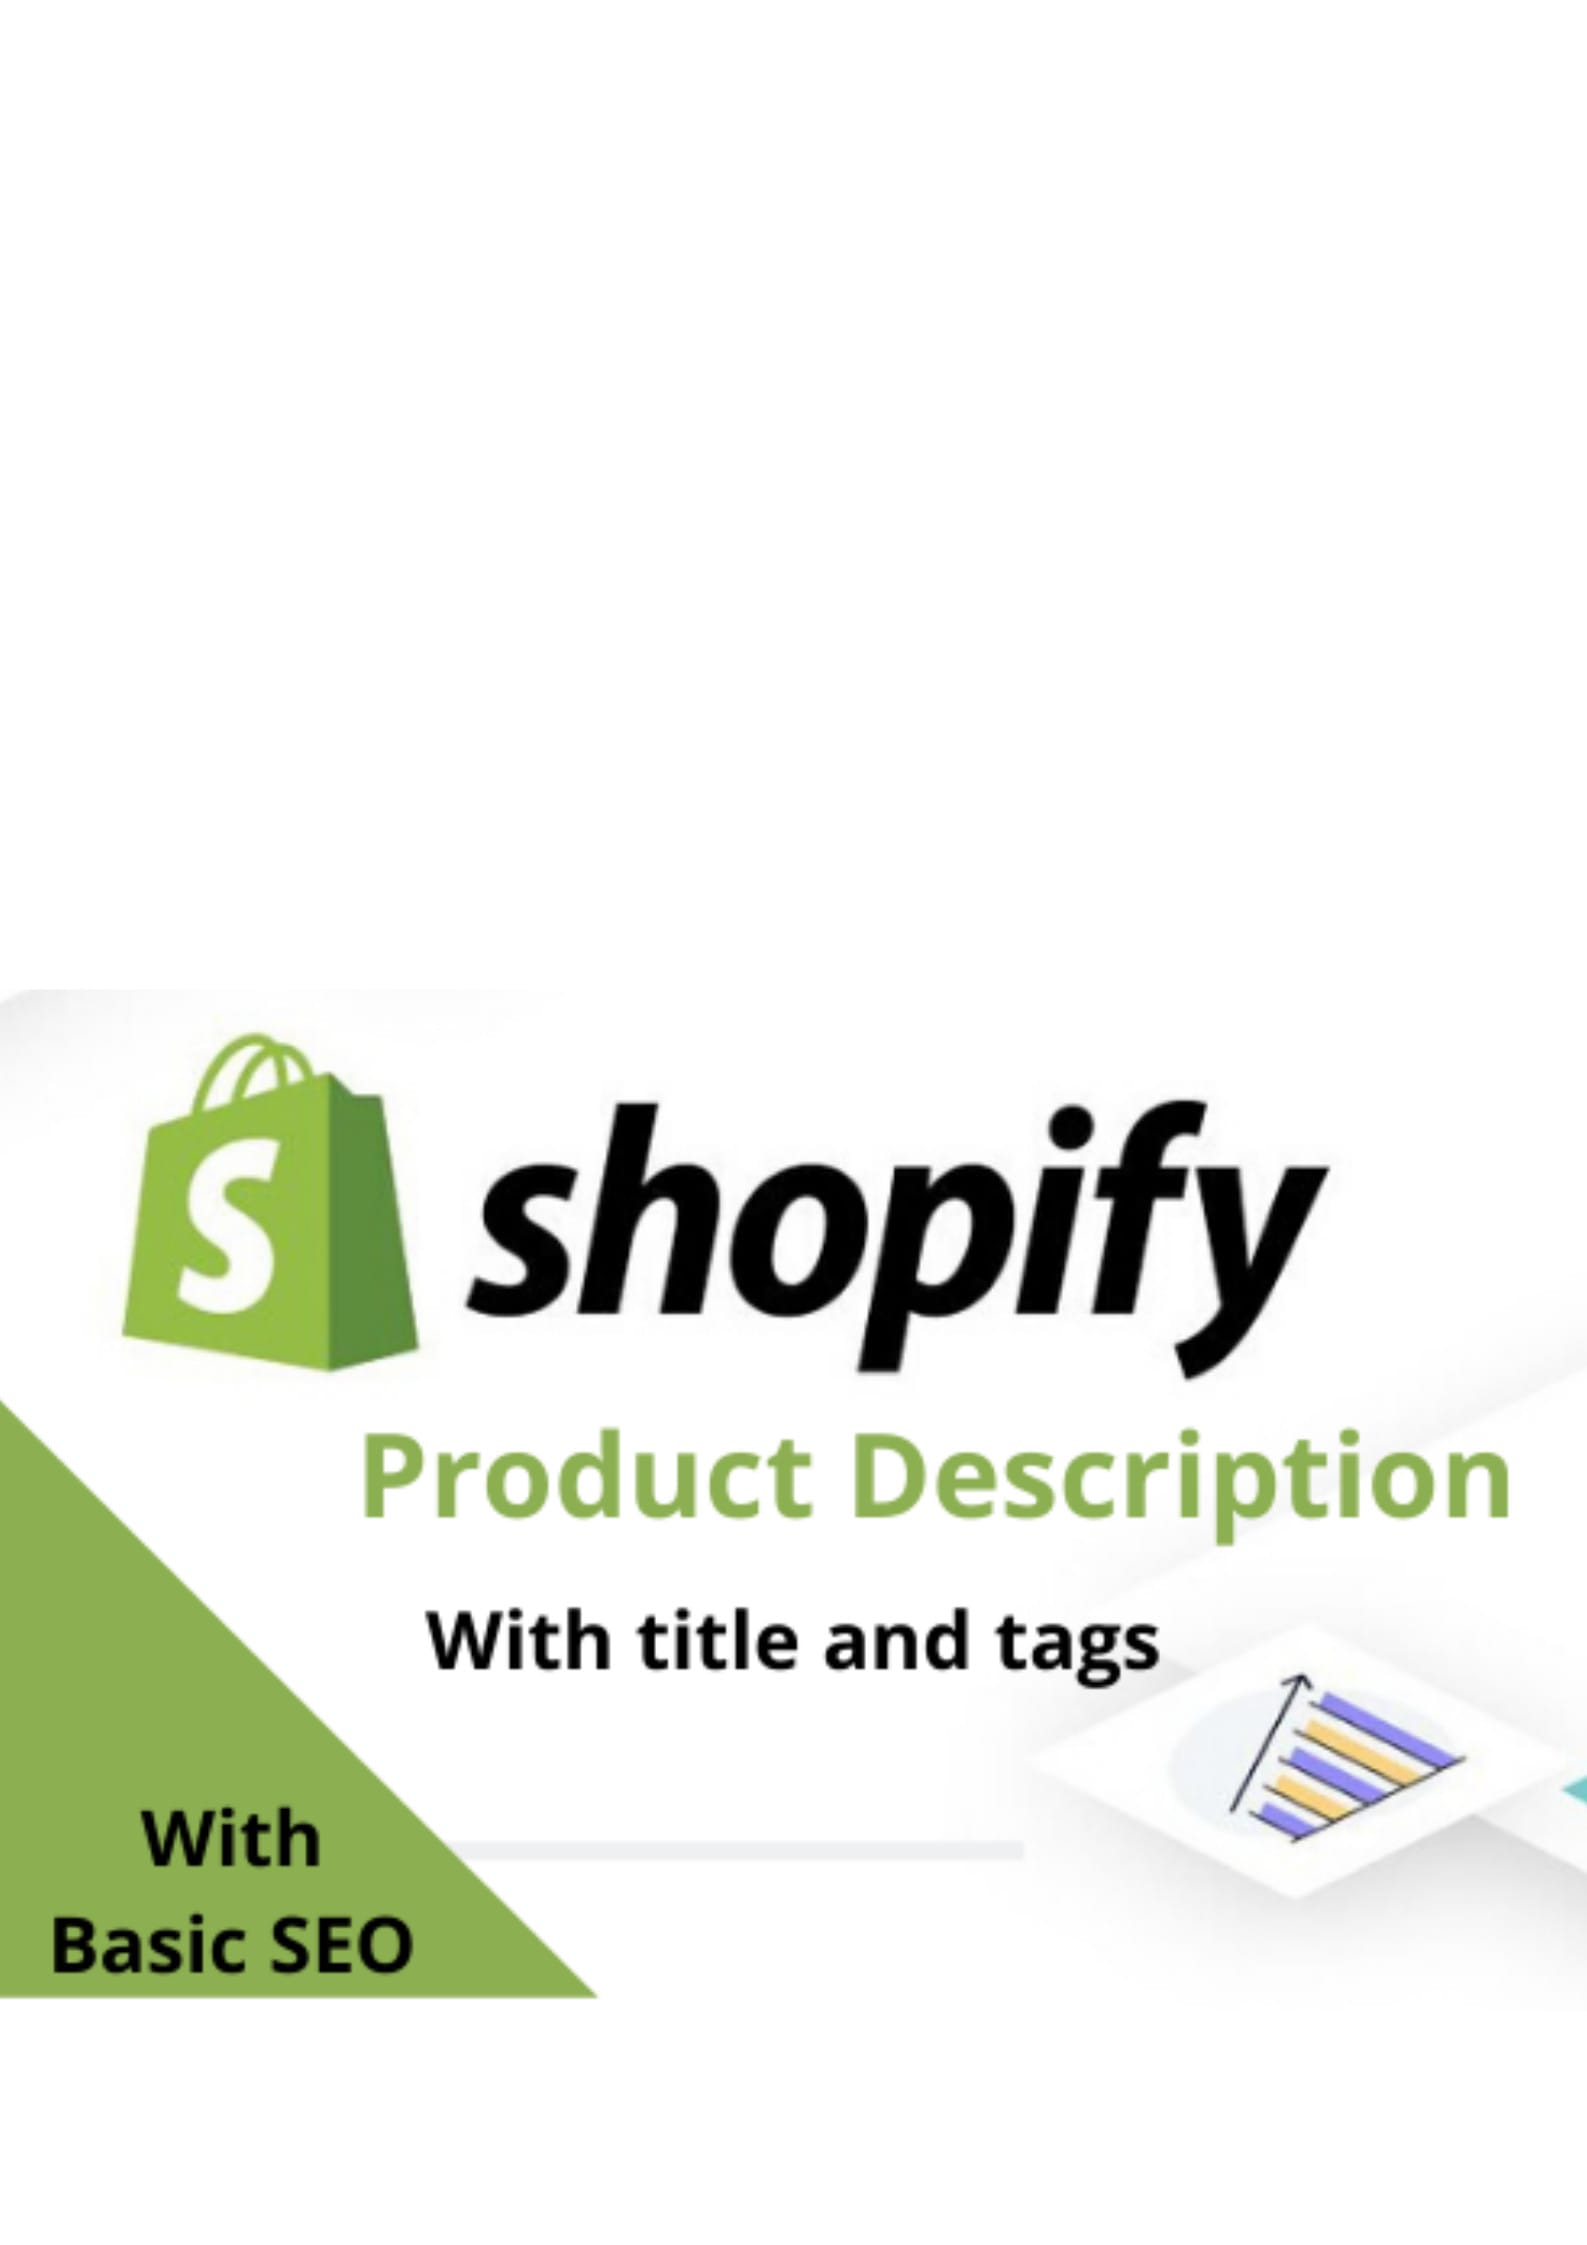 best persuasive SEO shopify product description with title and tags